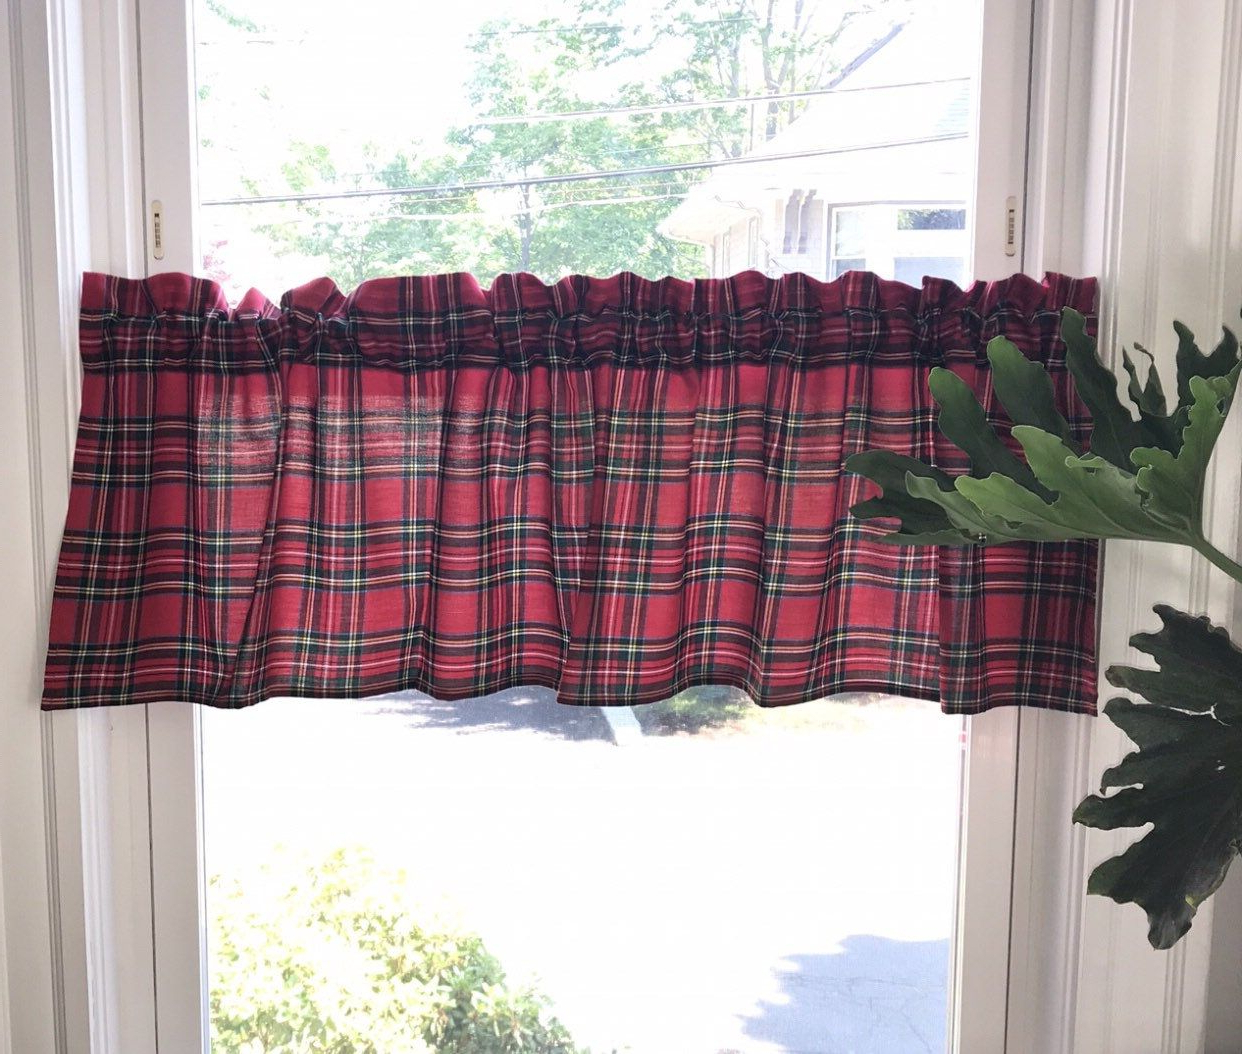 Preferred Cotton Blend Classic Checkered Decorative Window Curtains In Christmas Royal Stewart Tartan Valance, Red Green Plaid (View 14 of 20)